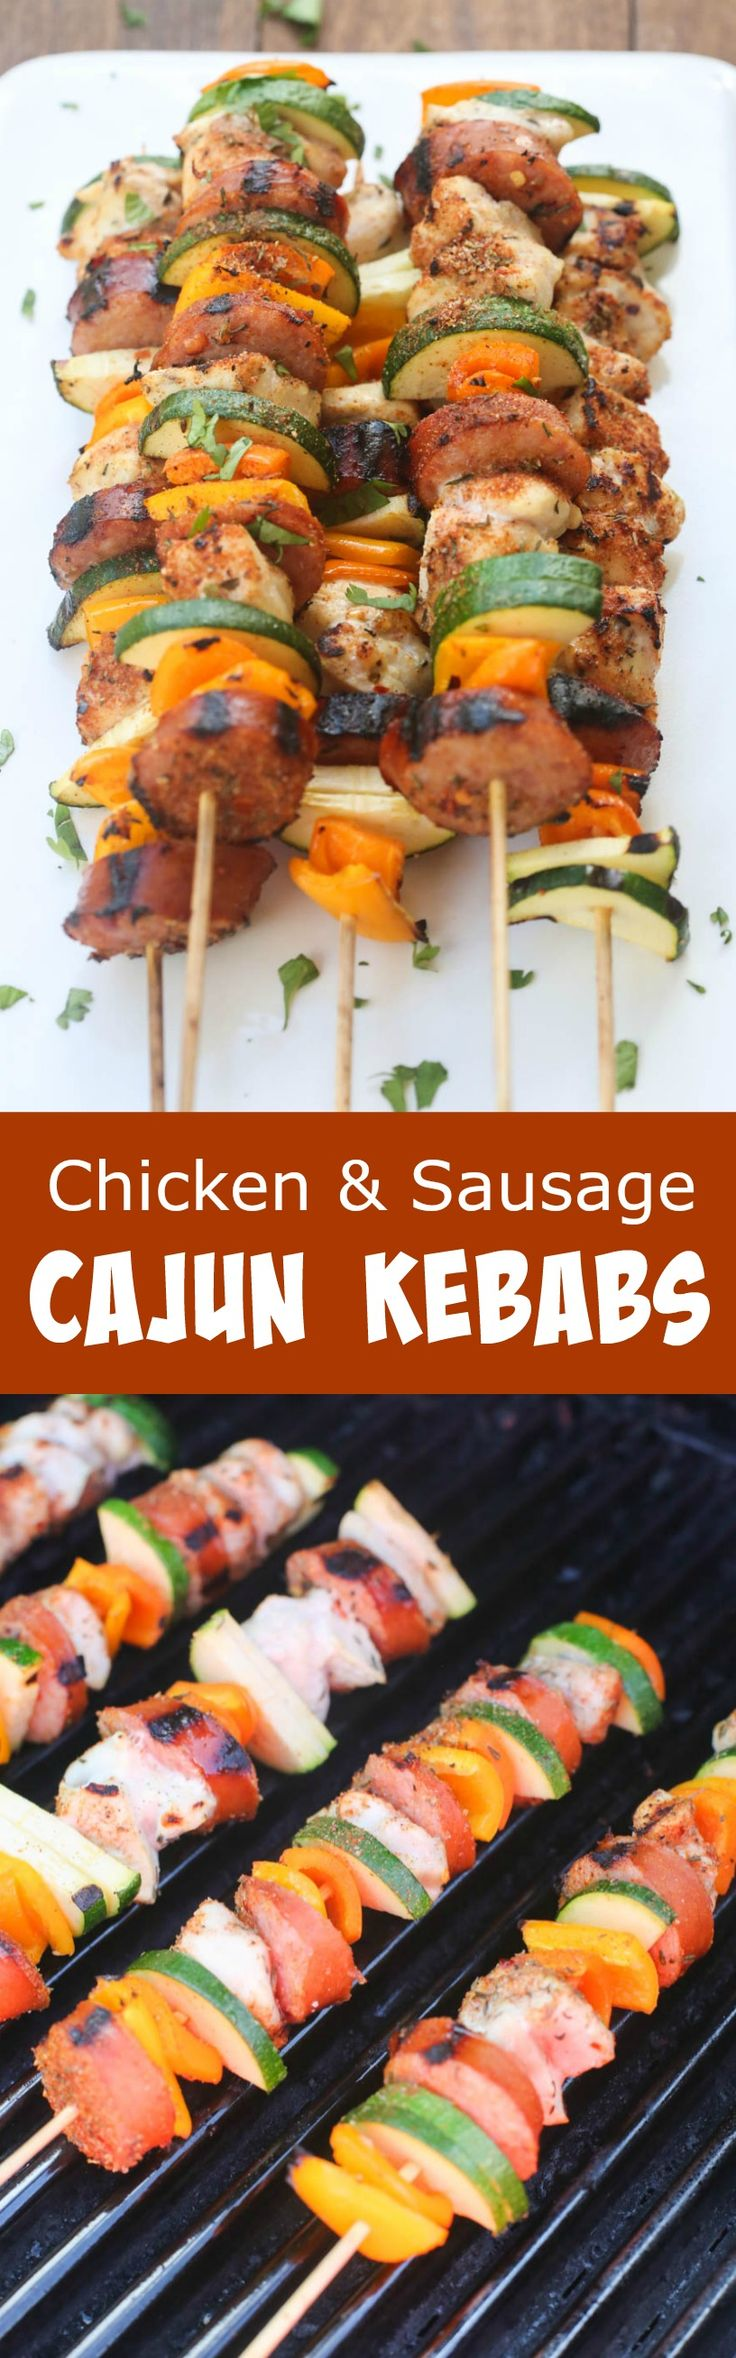 Grilled Cajun Chicken and Sausage Kebabs are packed with bold and spicy cajun flavors.   Tastes Better From Scratch